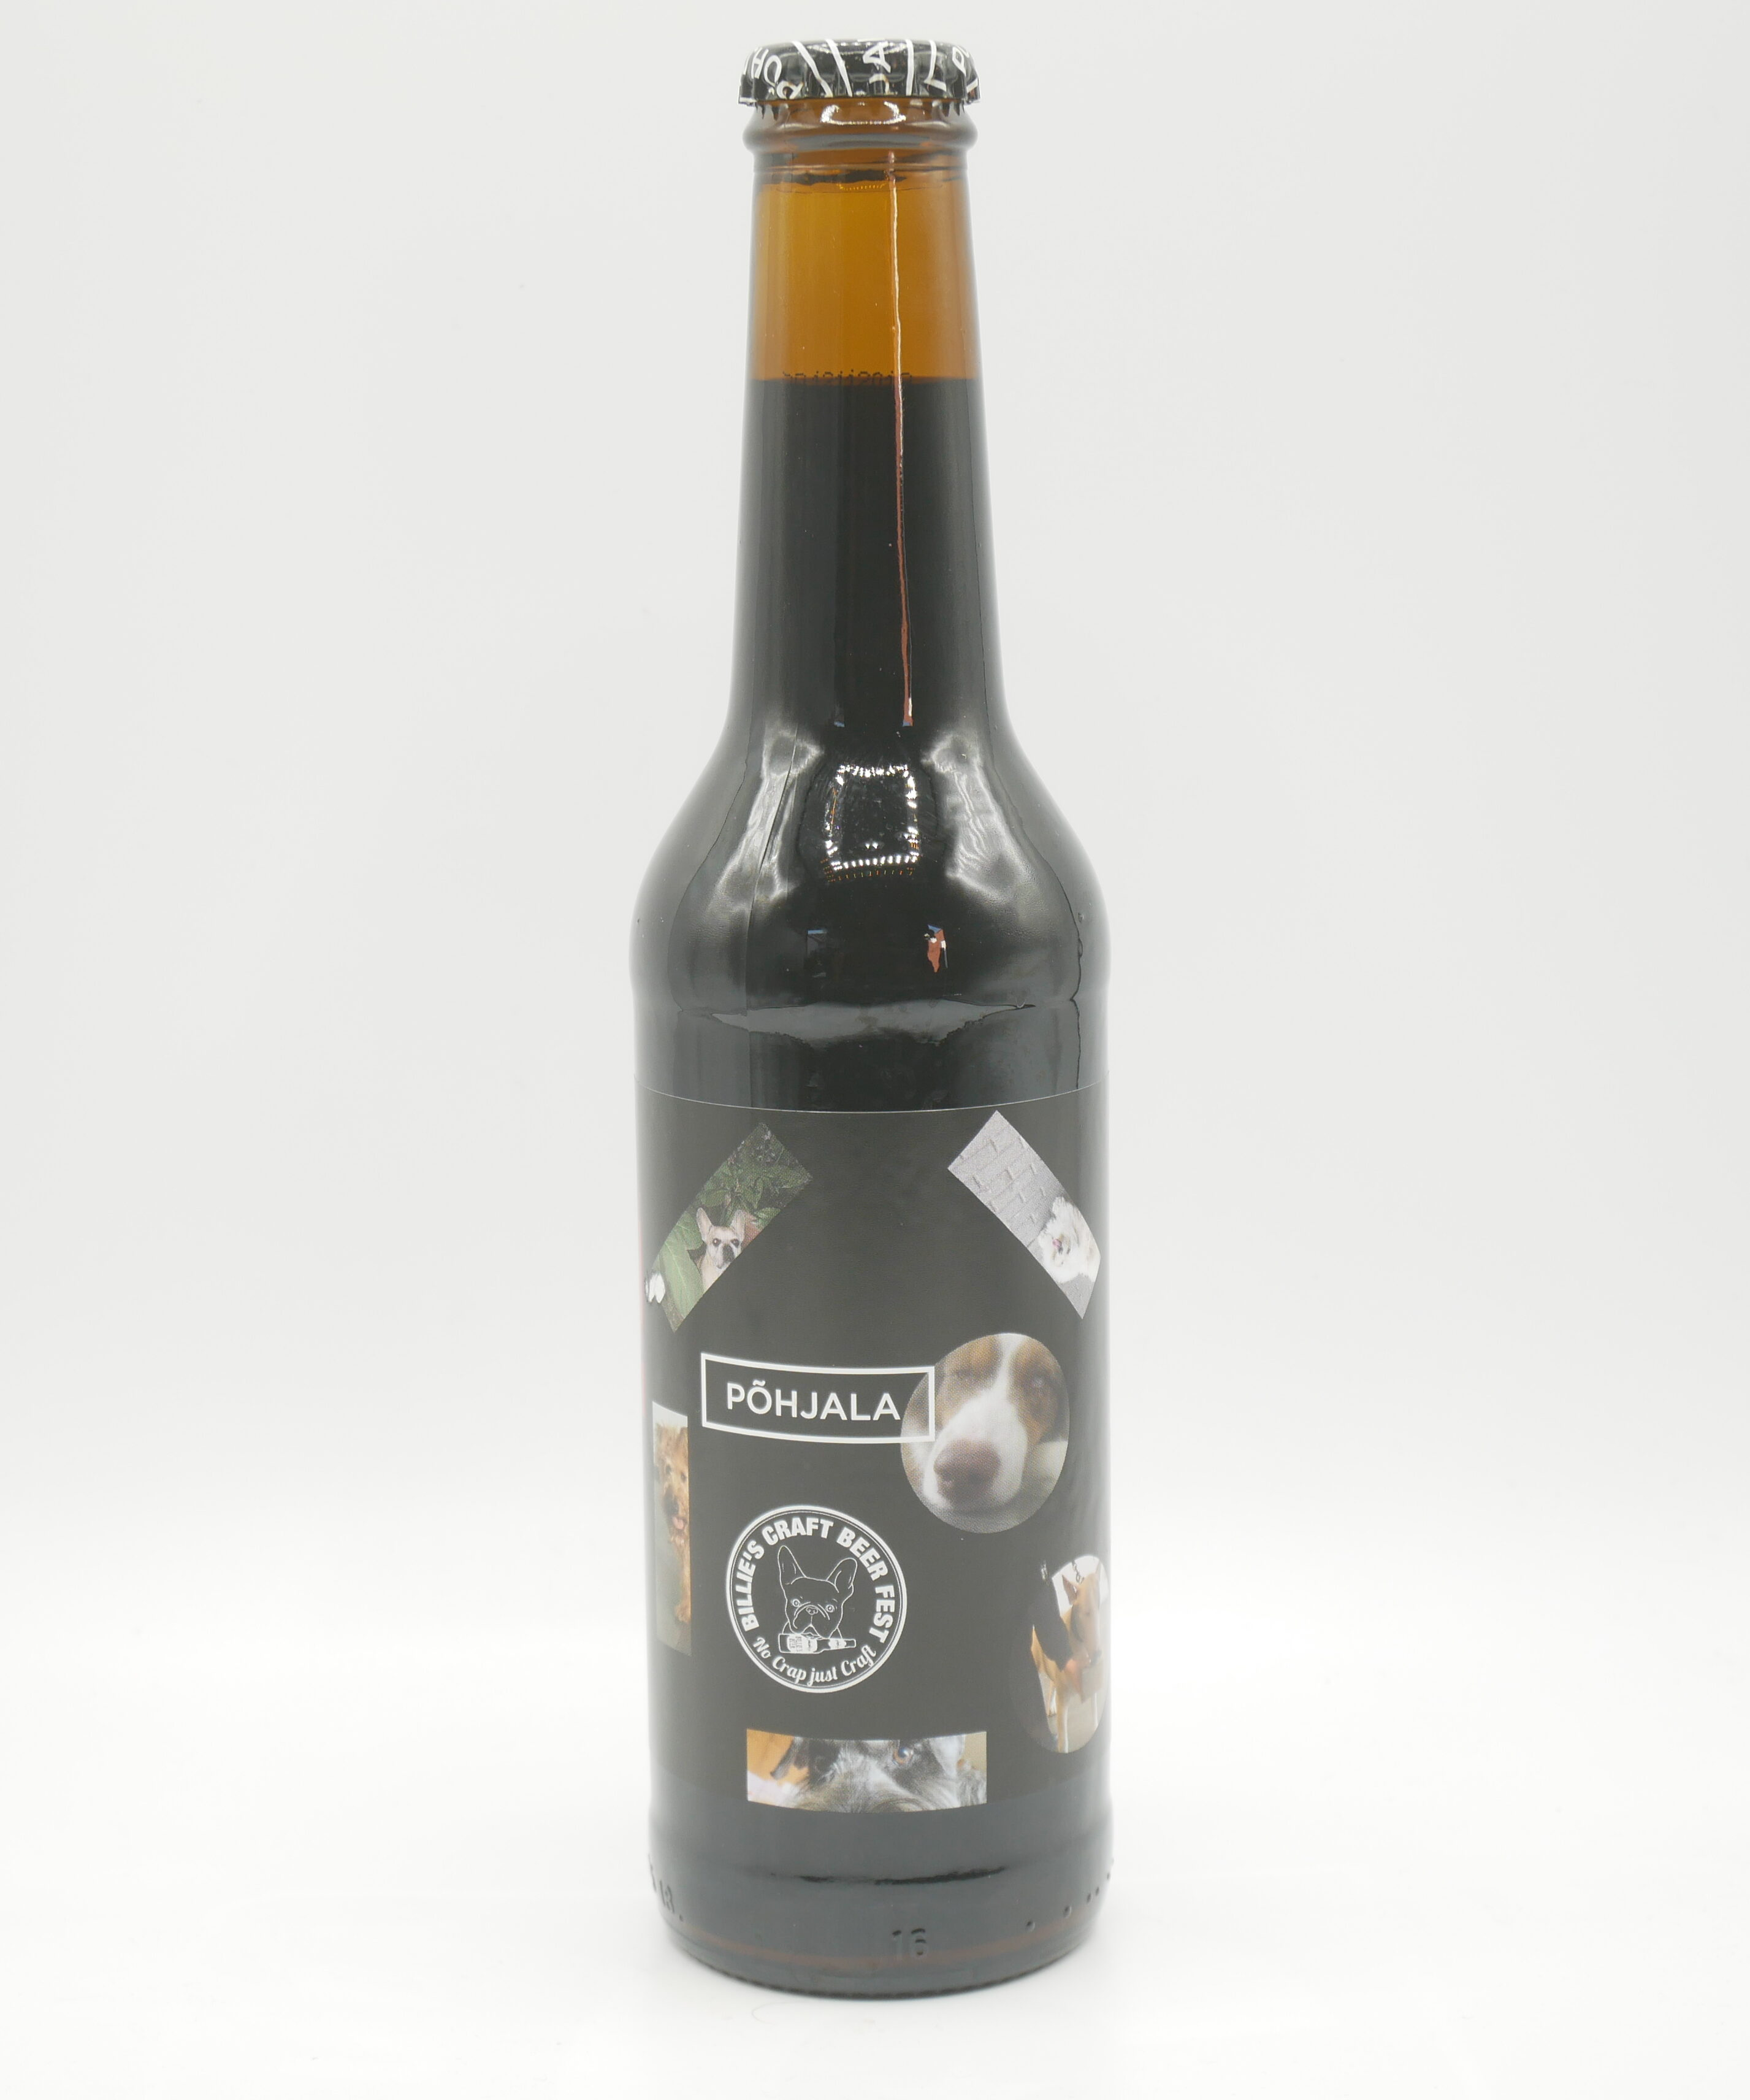 Image Billie's 24h Stout